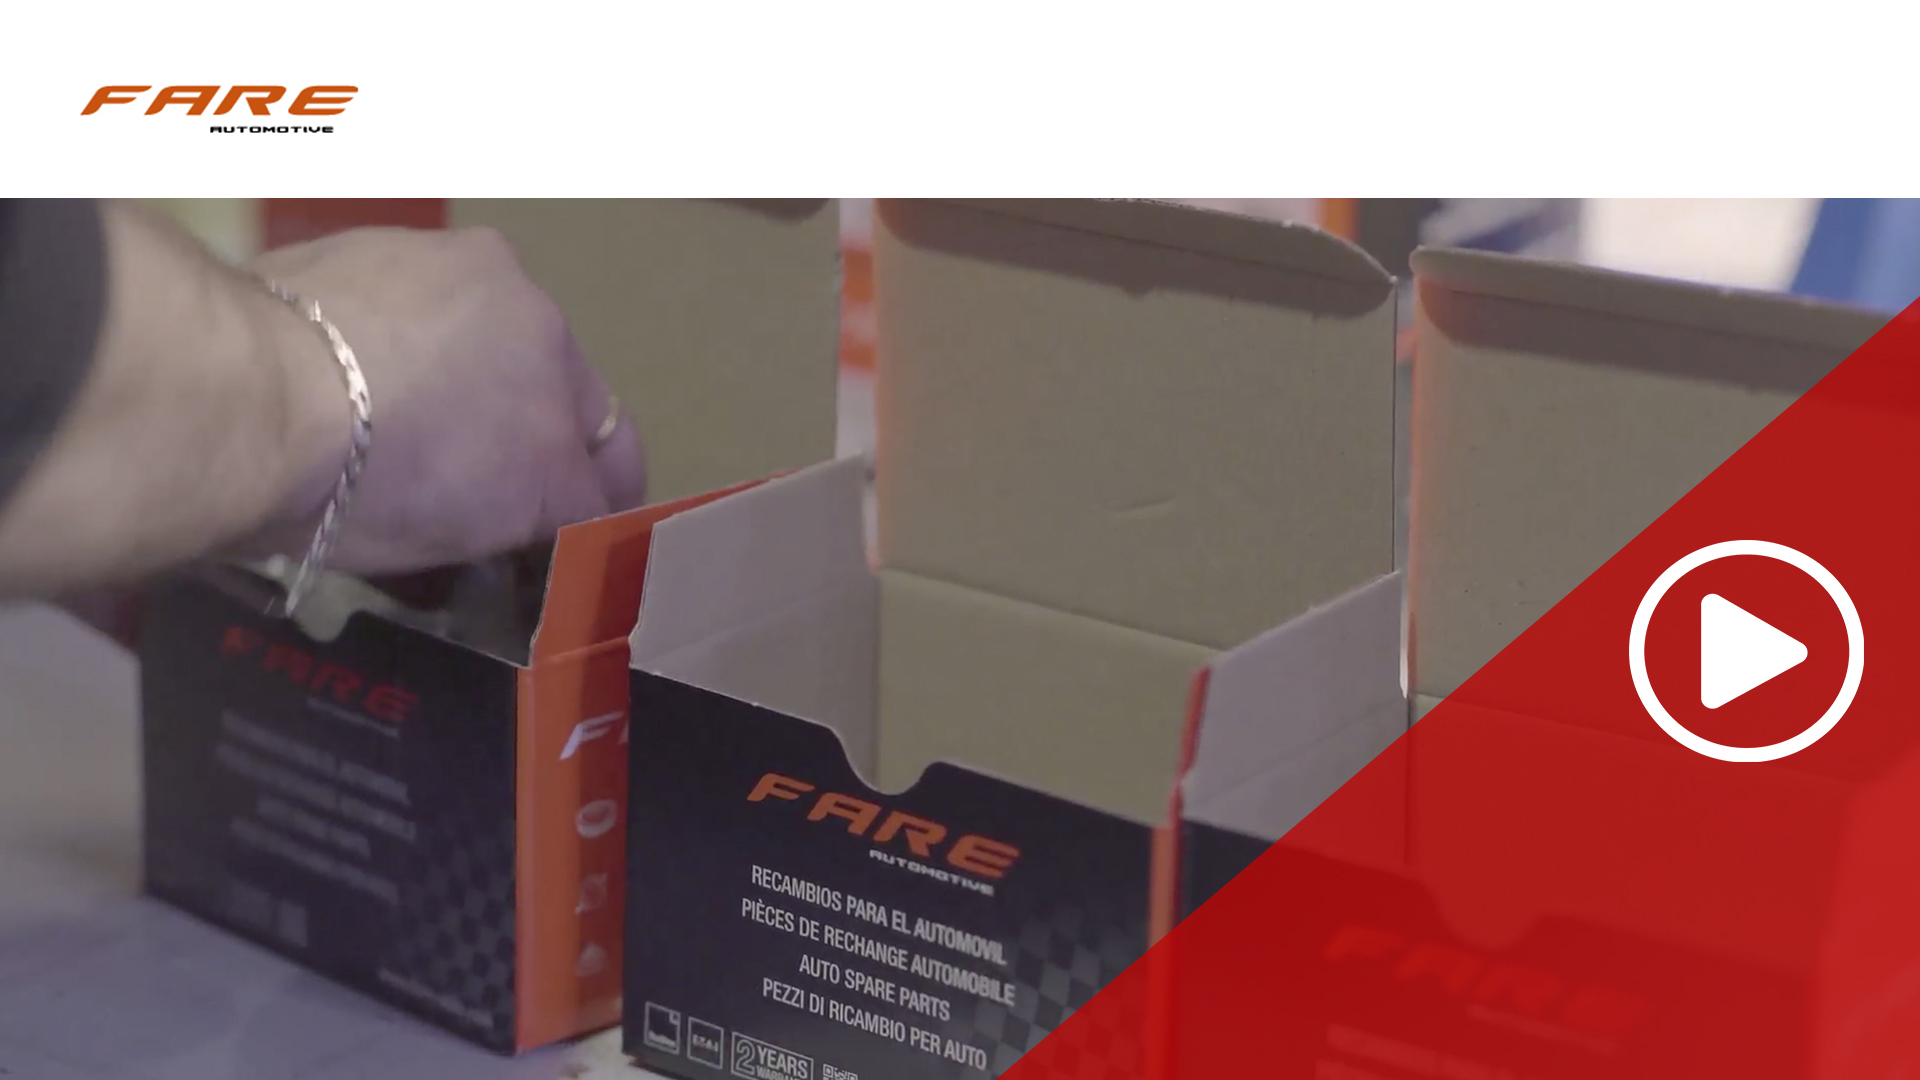 FARE, leading company in the manufacture of rubber and rubber-metal spare parts